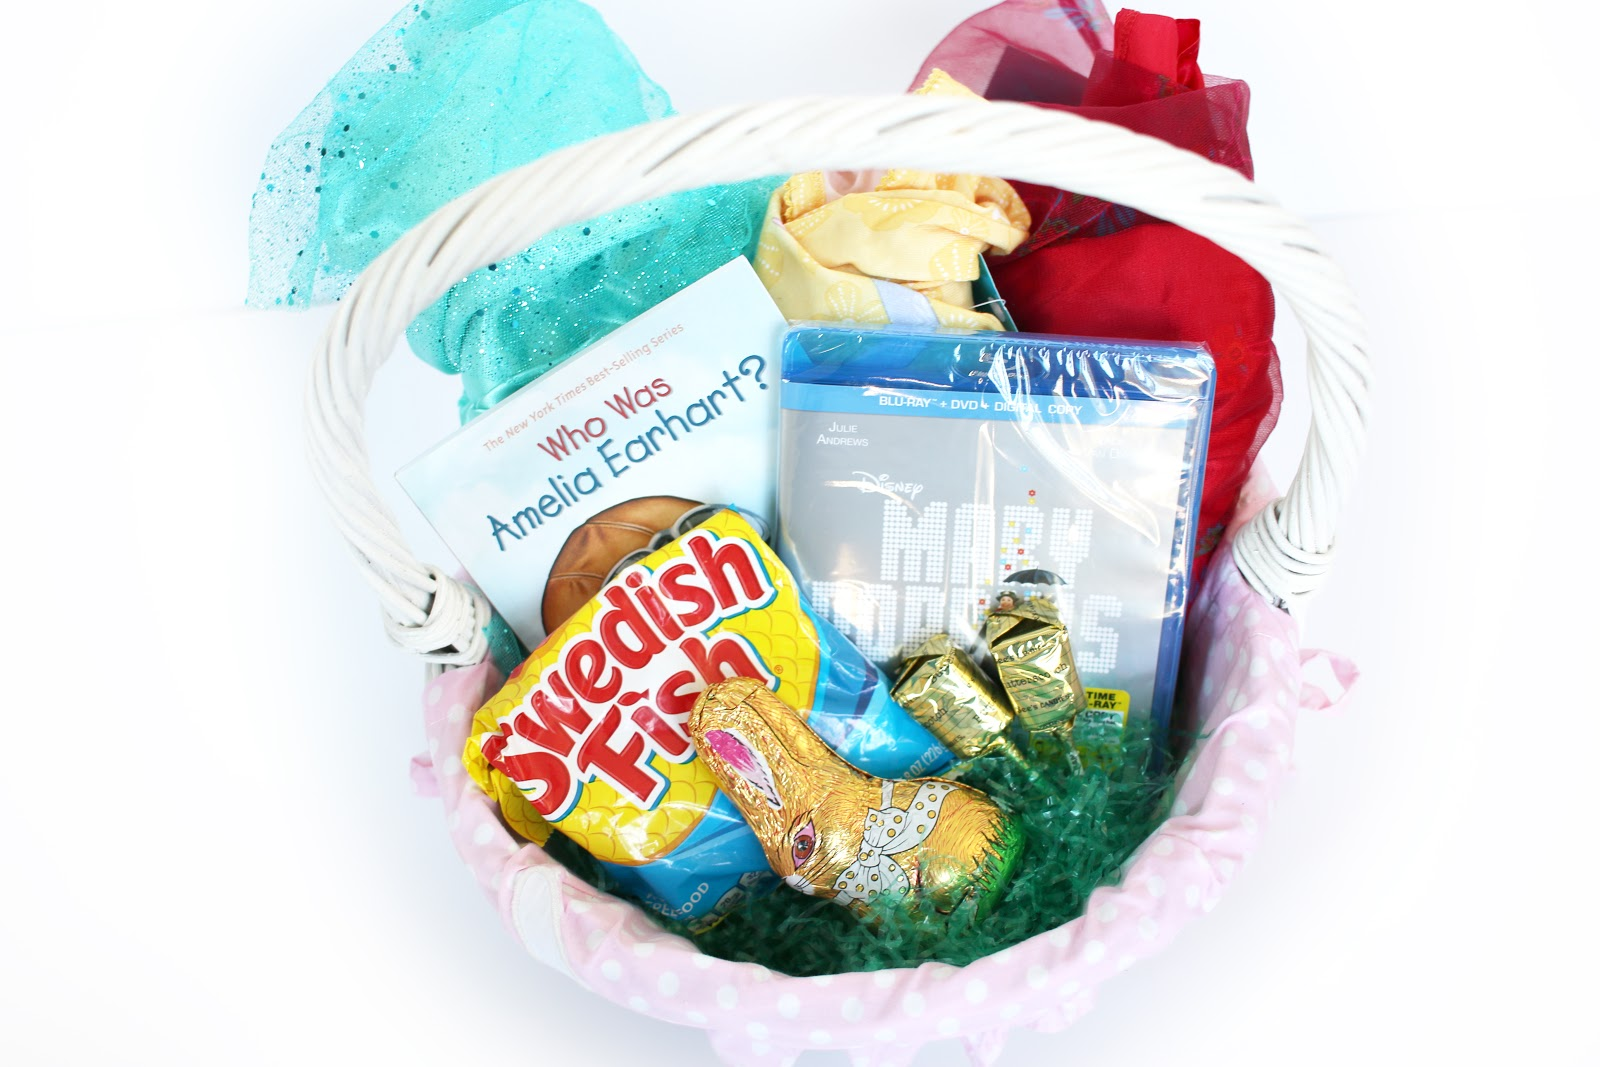 Easter baskets for Swedish fish jelly beans